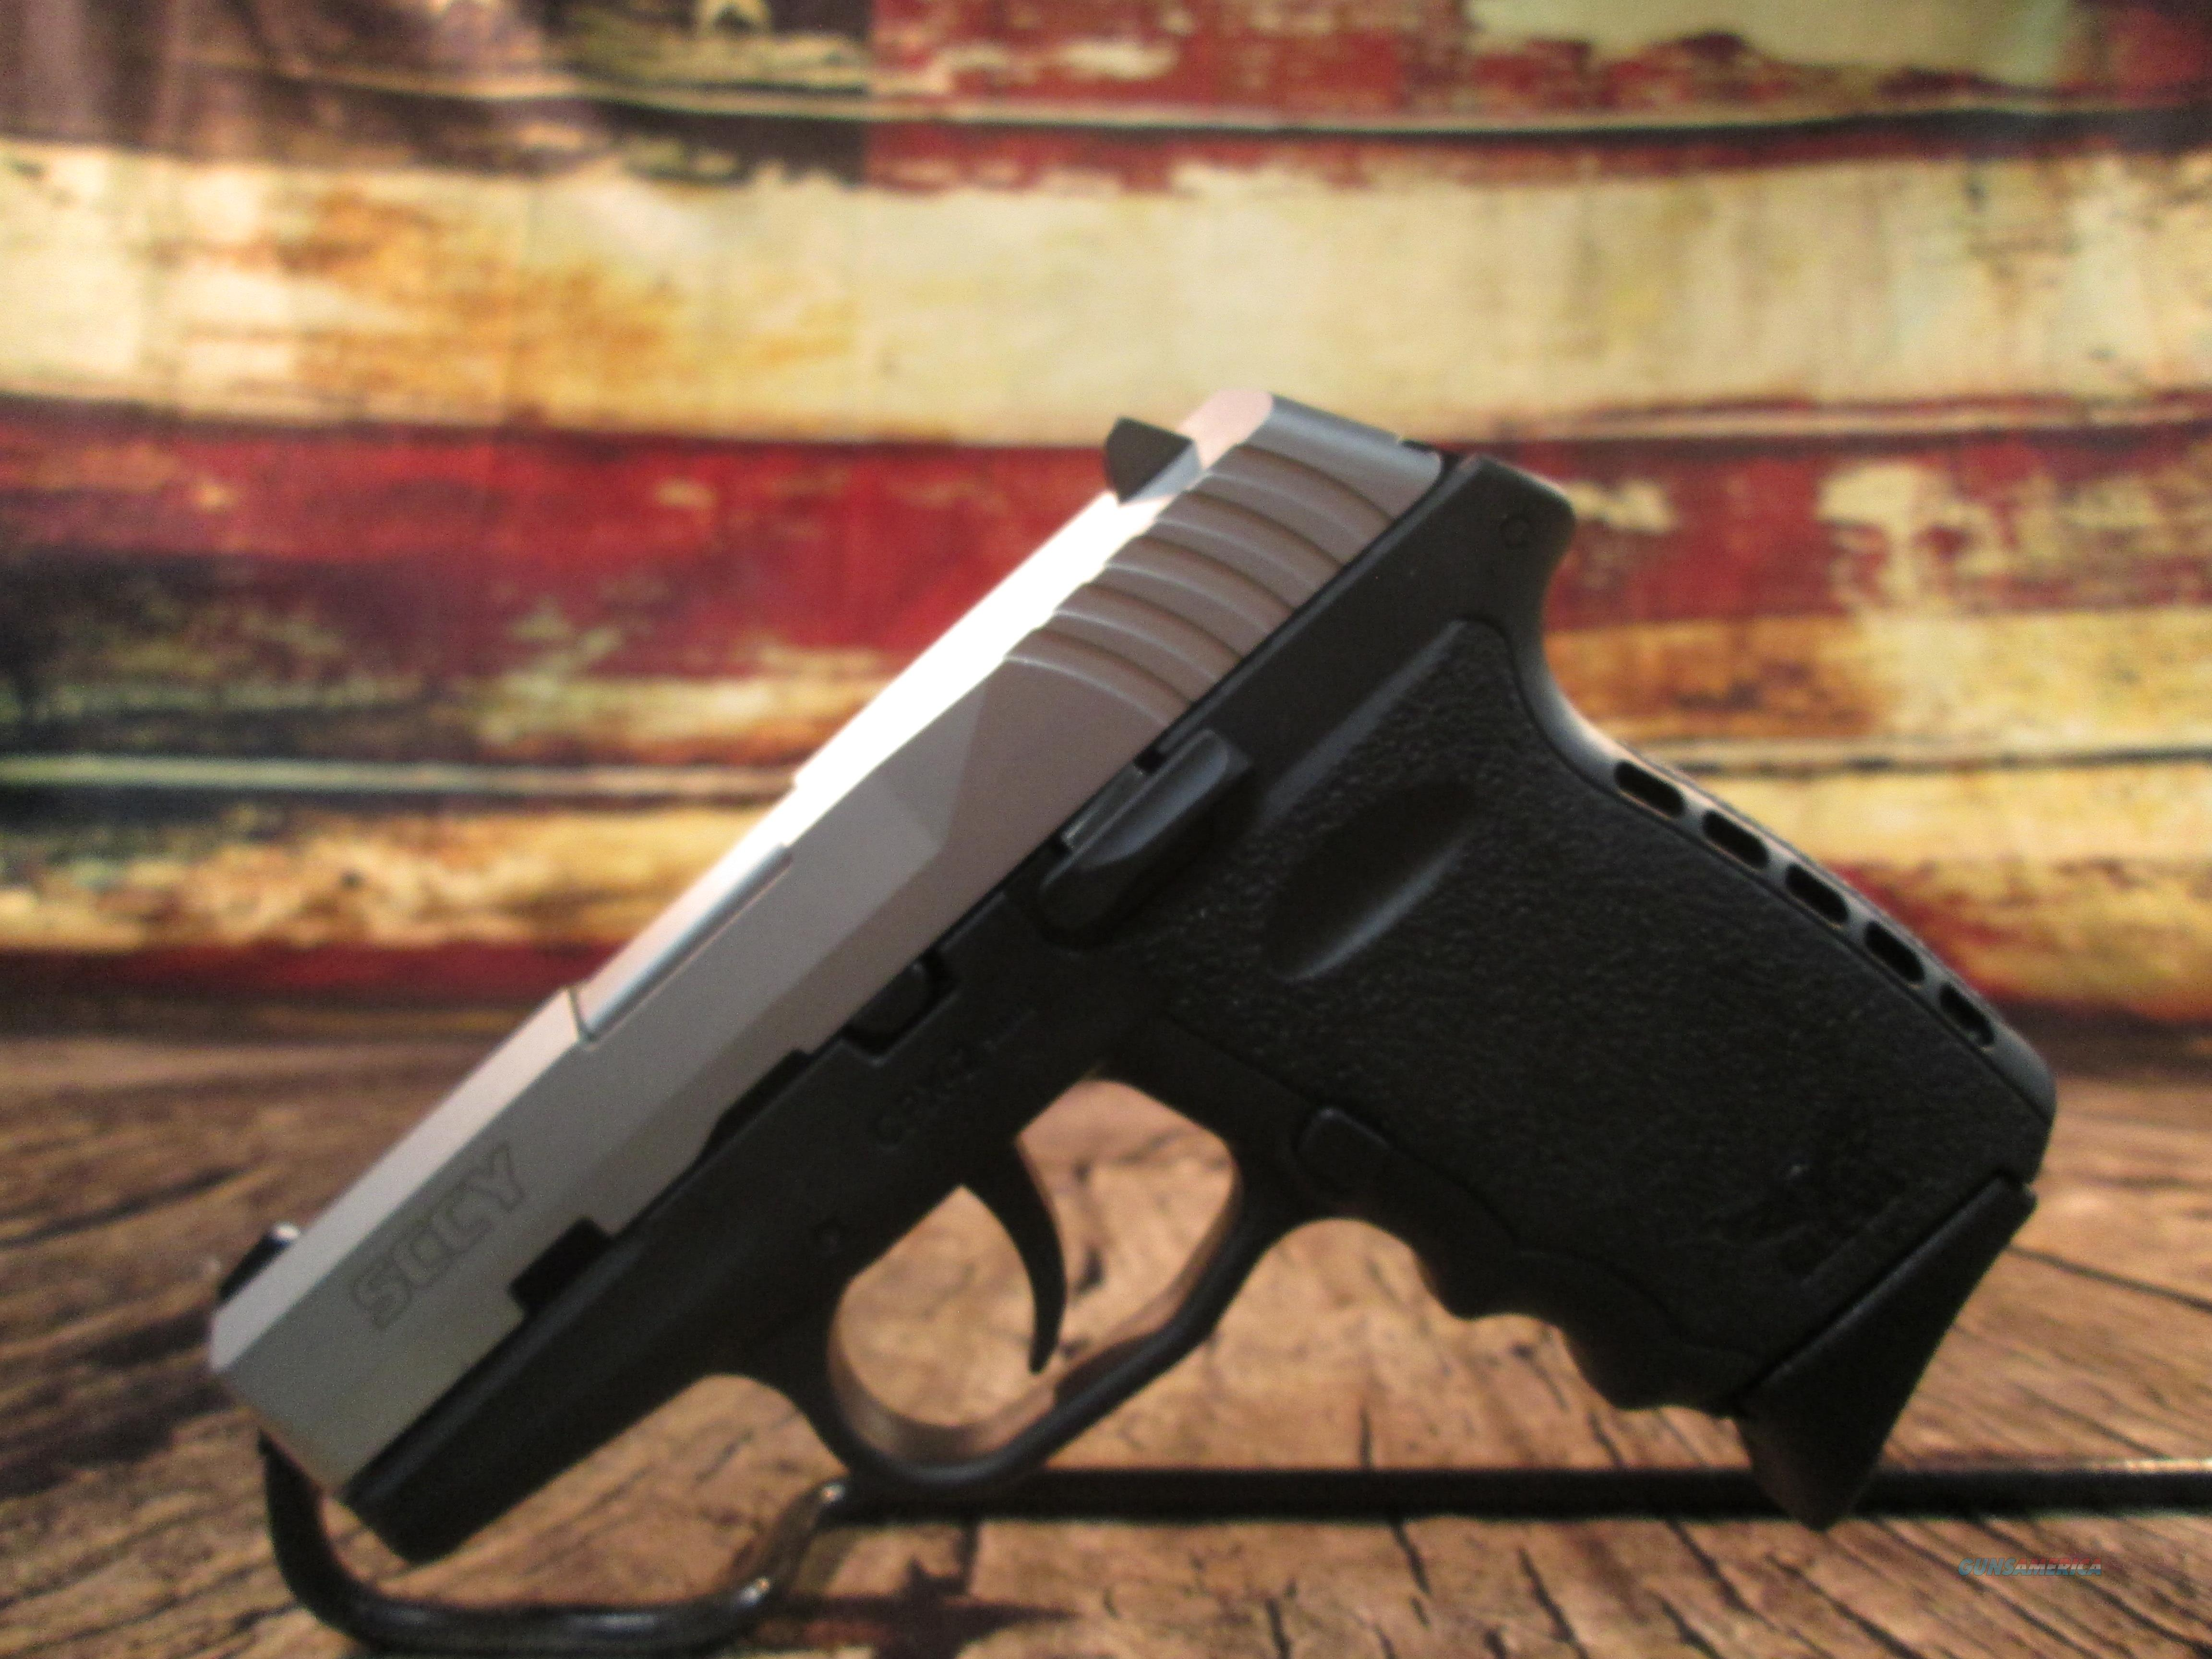 SCCY CPX-2 9MM TWO TONE NEW  (CPX2TT)  Guns > Pistols > SCCY Pistols > CPX2